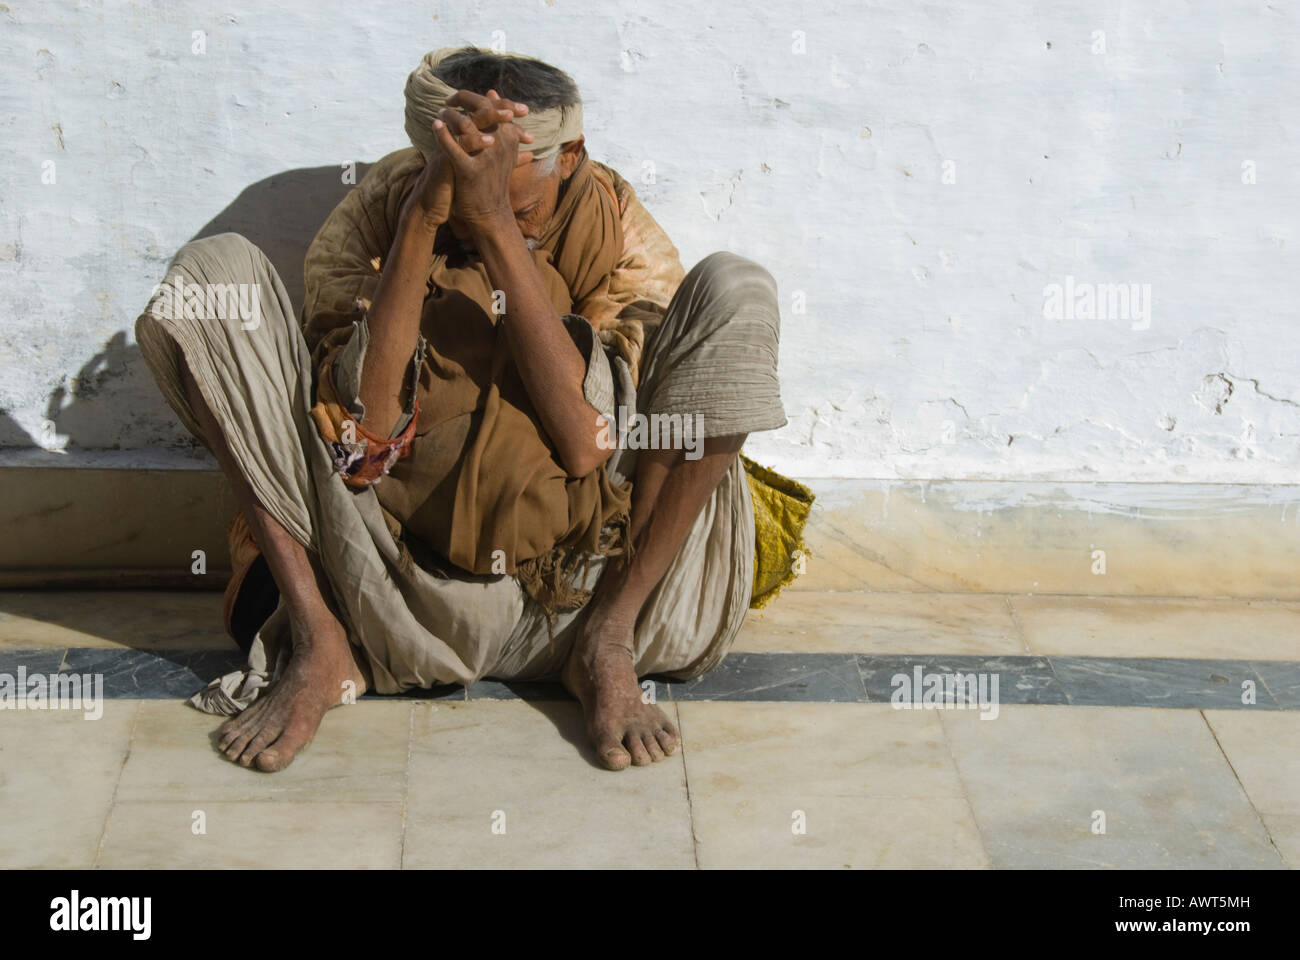 Portrait of an elderly man in a praying posture within a temple complex in Udaipur, Rajasthan, India. - Stock Image